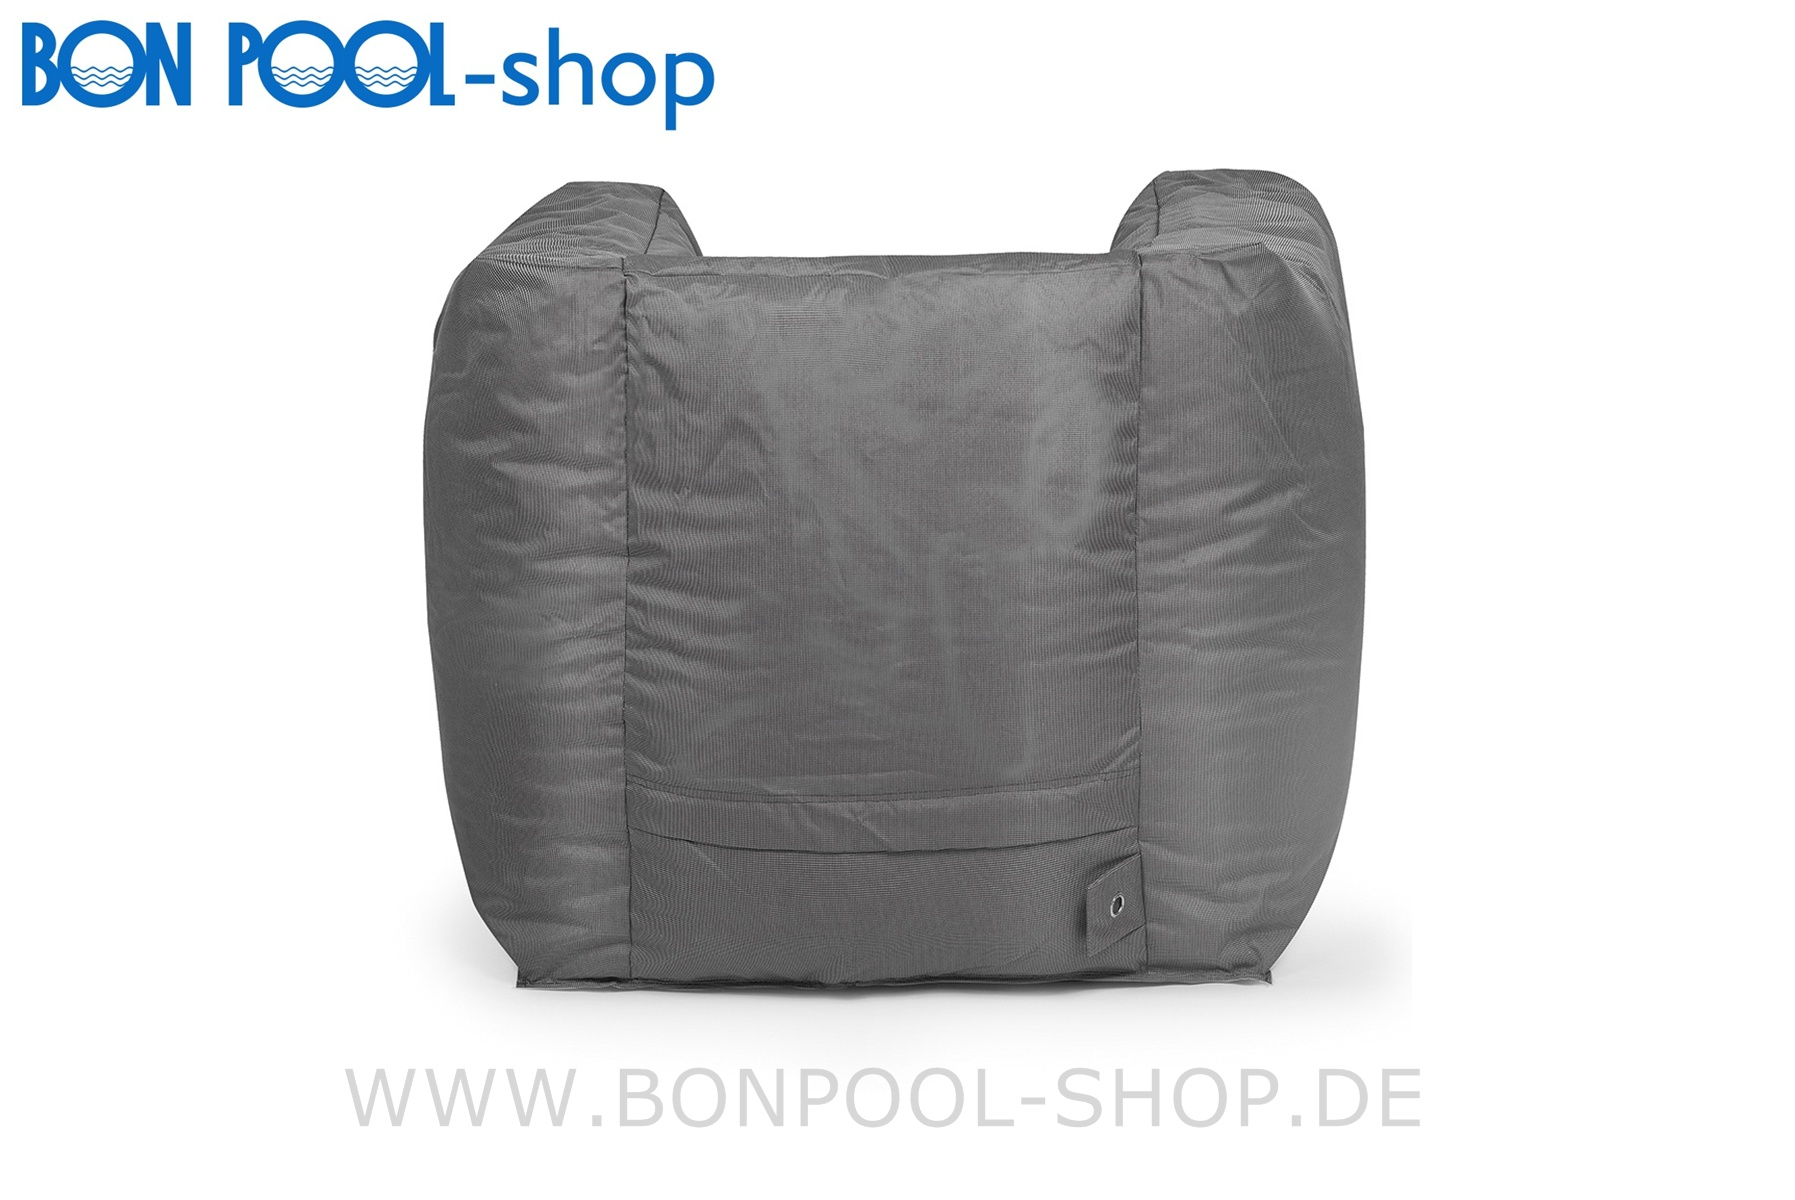 garten m bel valley anthrazit outbag bon pool. Black Bedroom Furniture Sets. Home Design Ideas